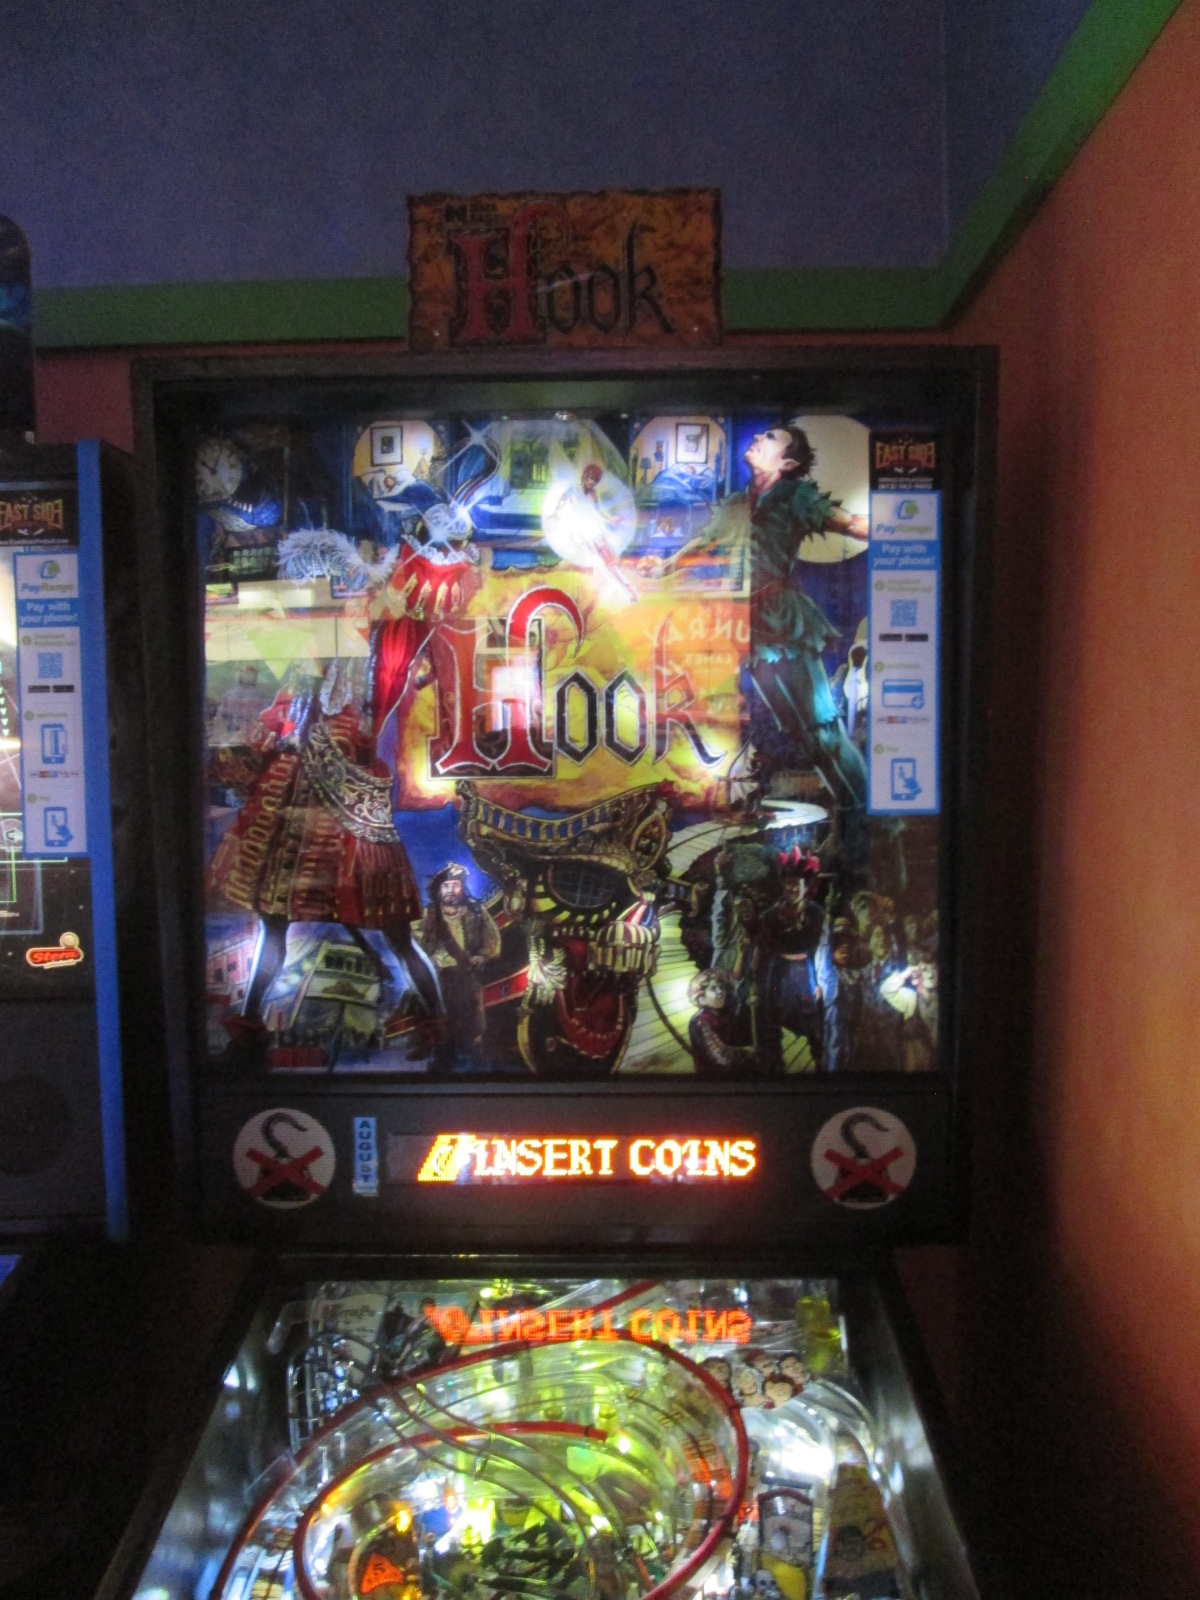 ed1475: Hook (Pinball: 3 Balls) 44,344,370 points on 2016-10-09 19:43:55